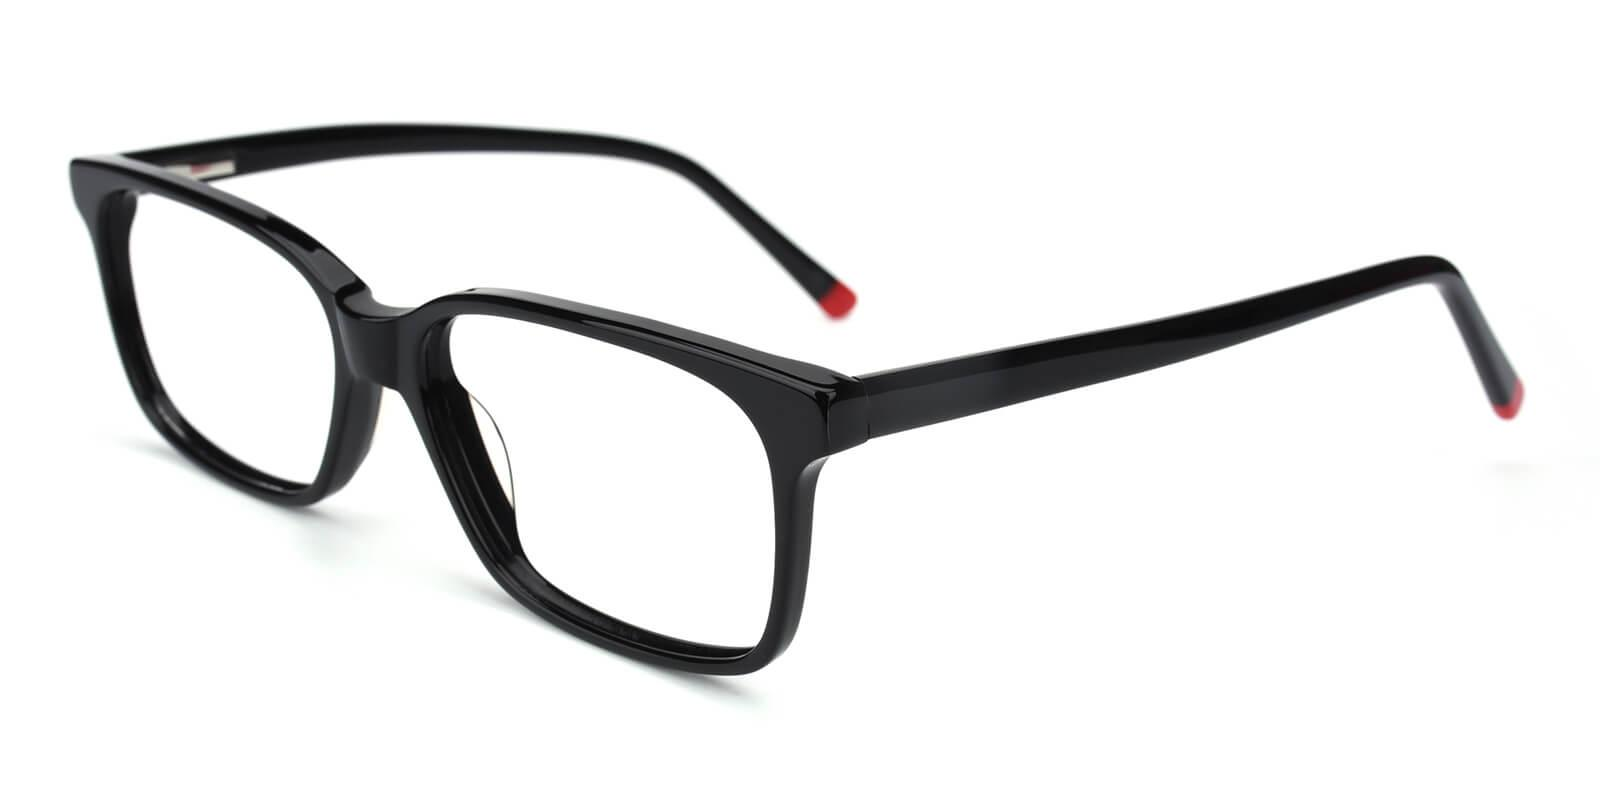 Bolayer-Black-Rectangle-Acetate-Eyeglasses-detail